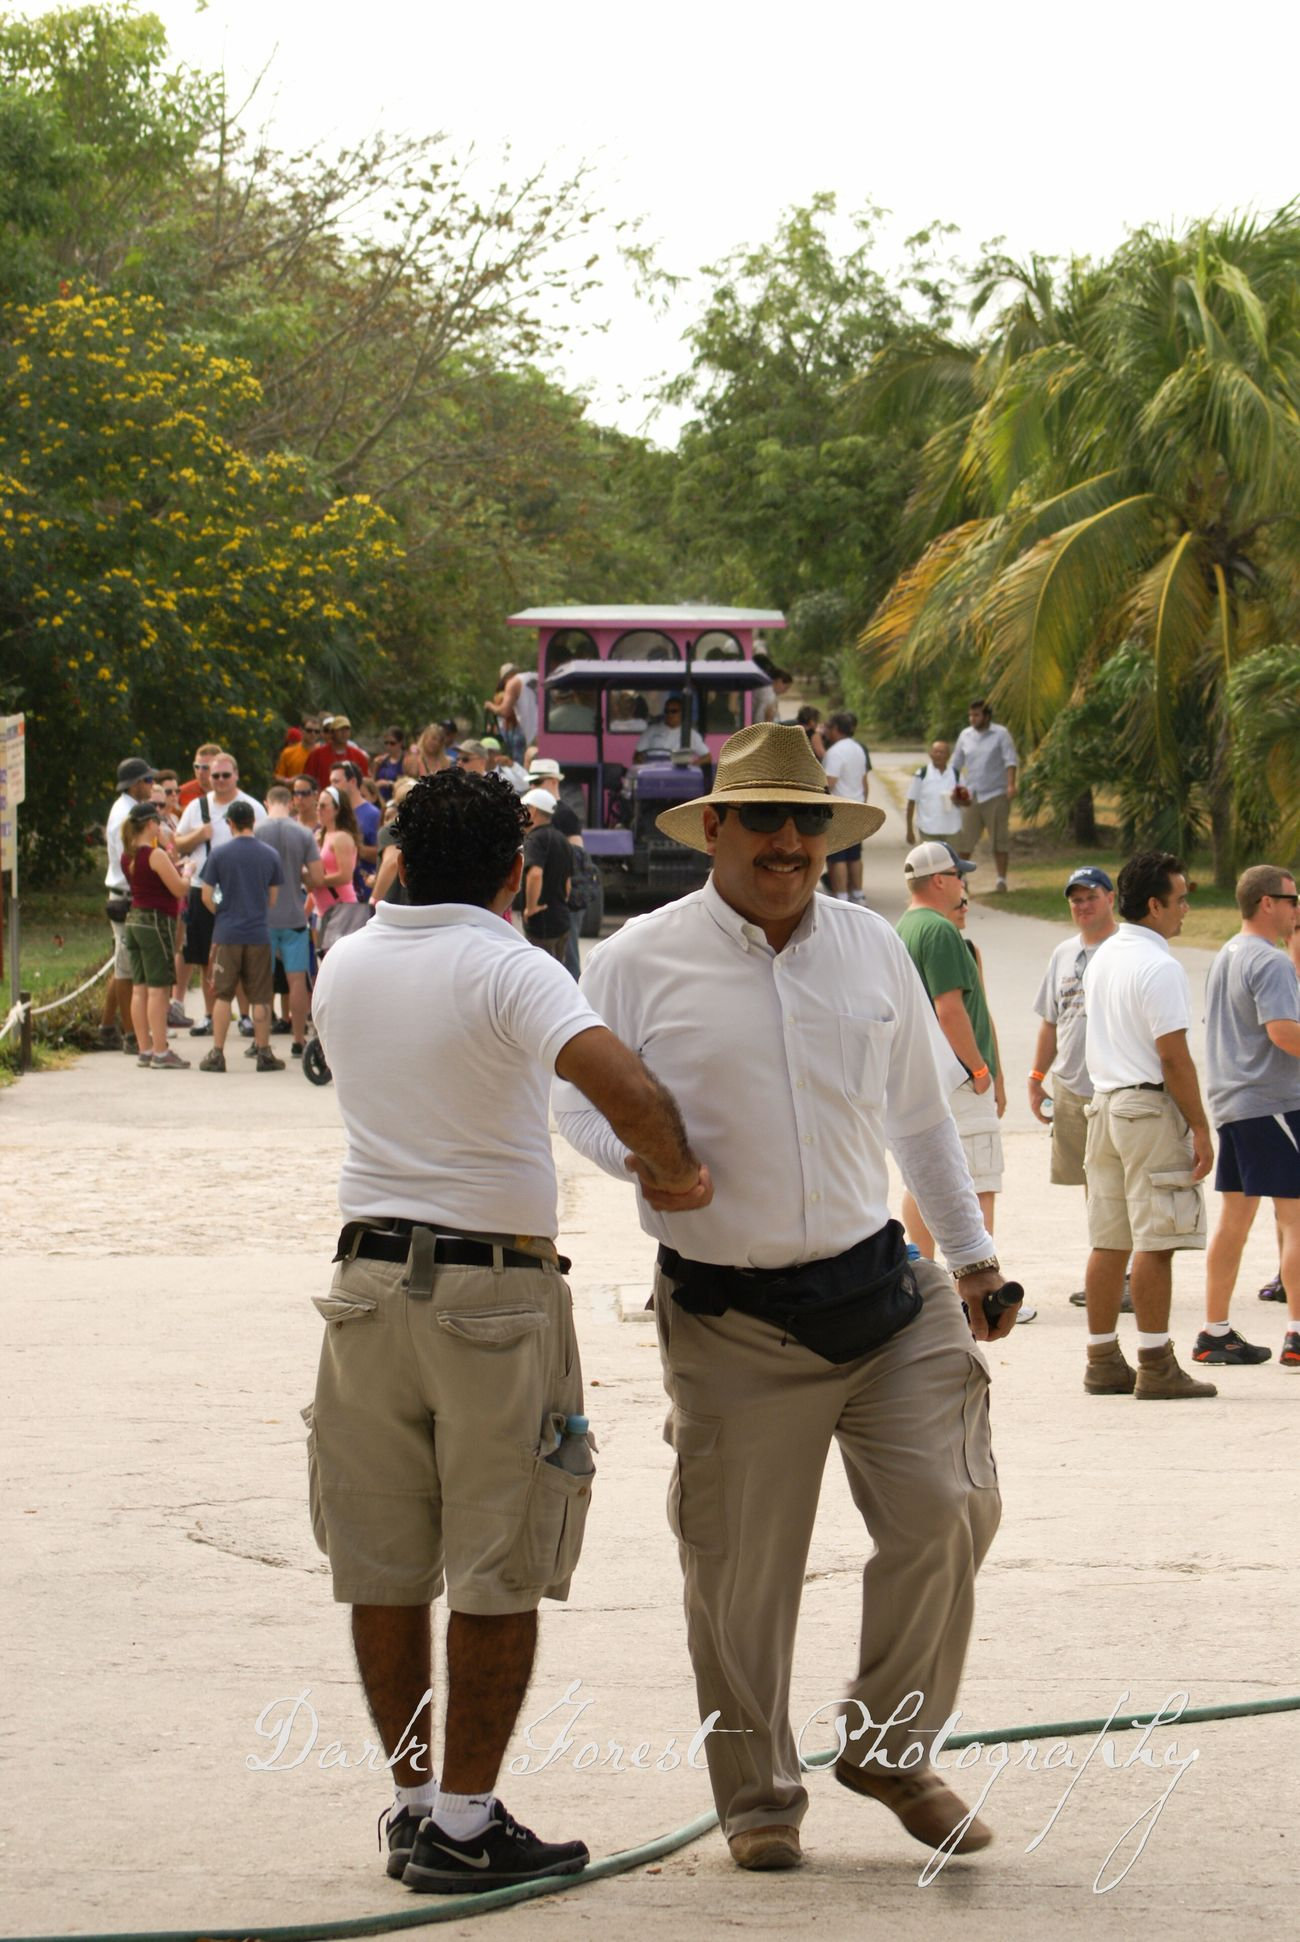 Team work Rear View Full Length Tree Adults Only Day People Mature Adult Adult Men Outdoors Large Group Of People Only Men Mexico Tulum , Rivera Maya. Ruins Tourist Attraction